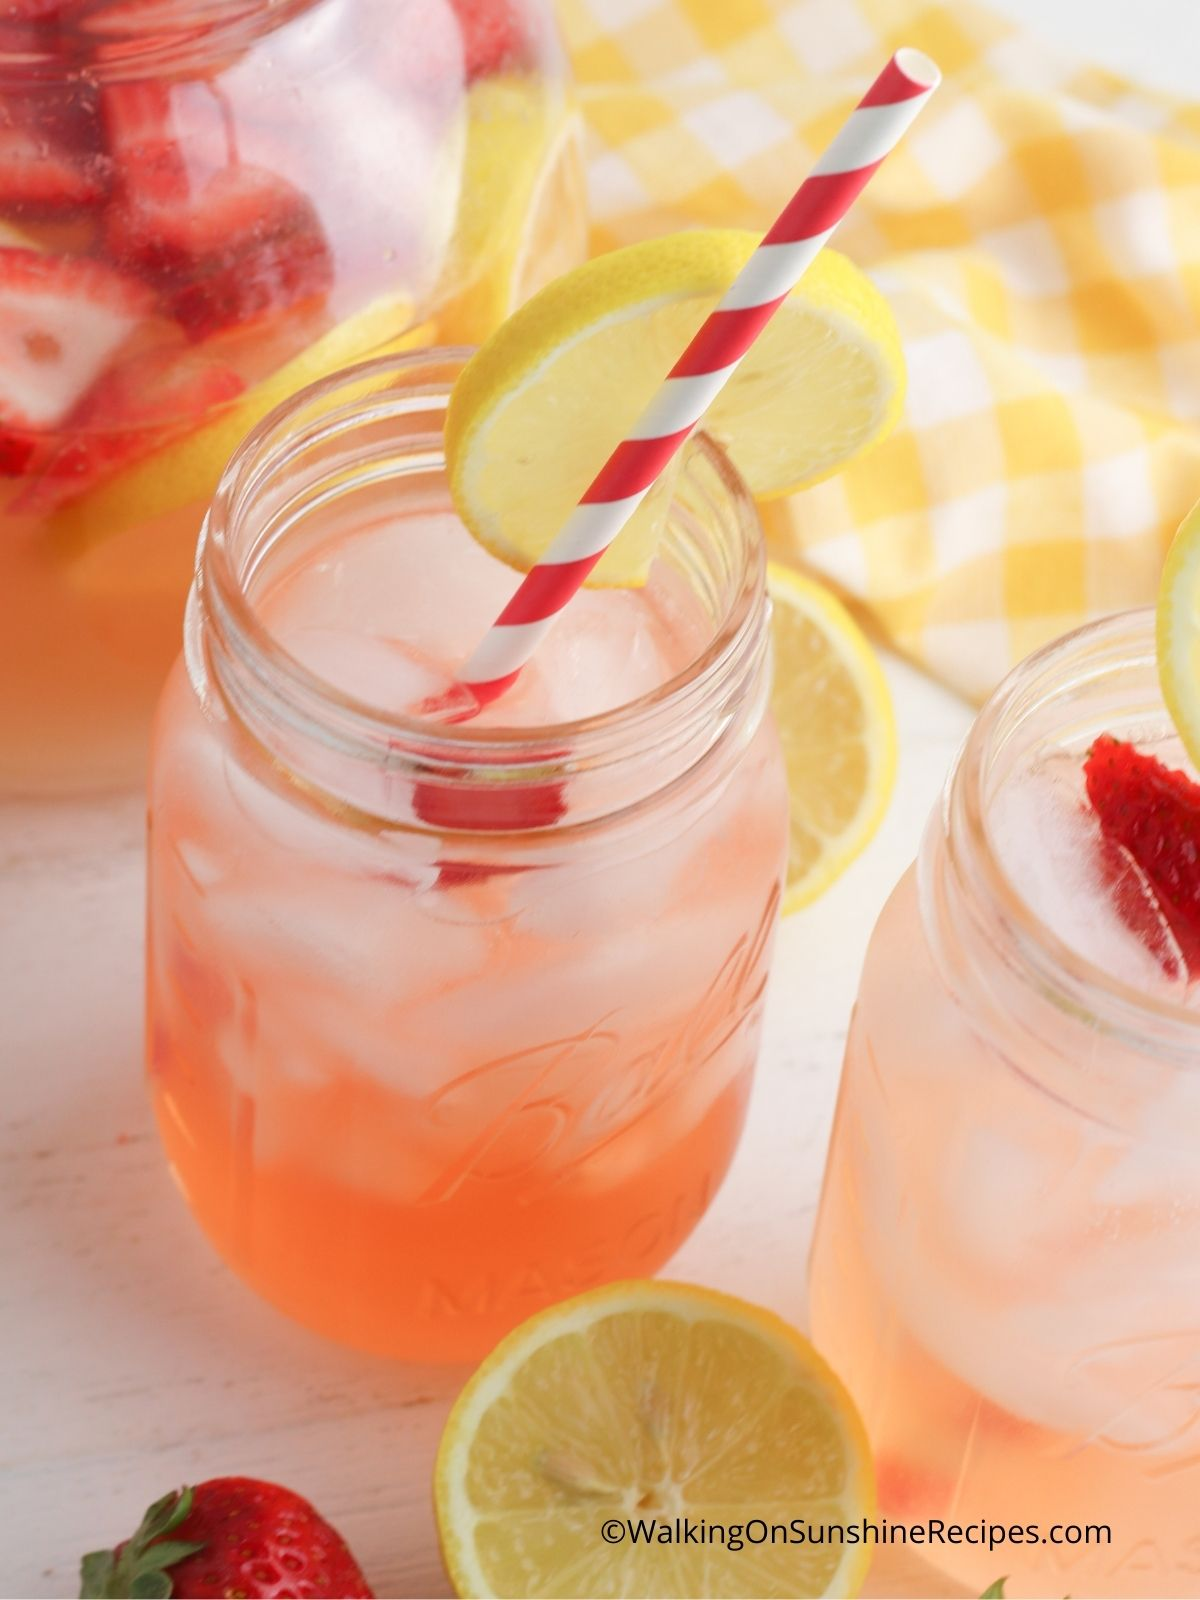 Infused strawberry lemonade in mason jars with red and white striped straws